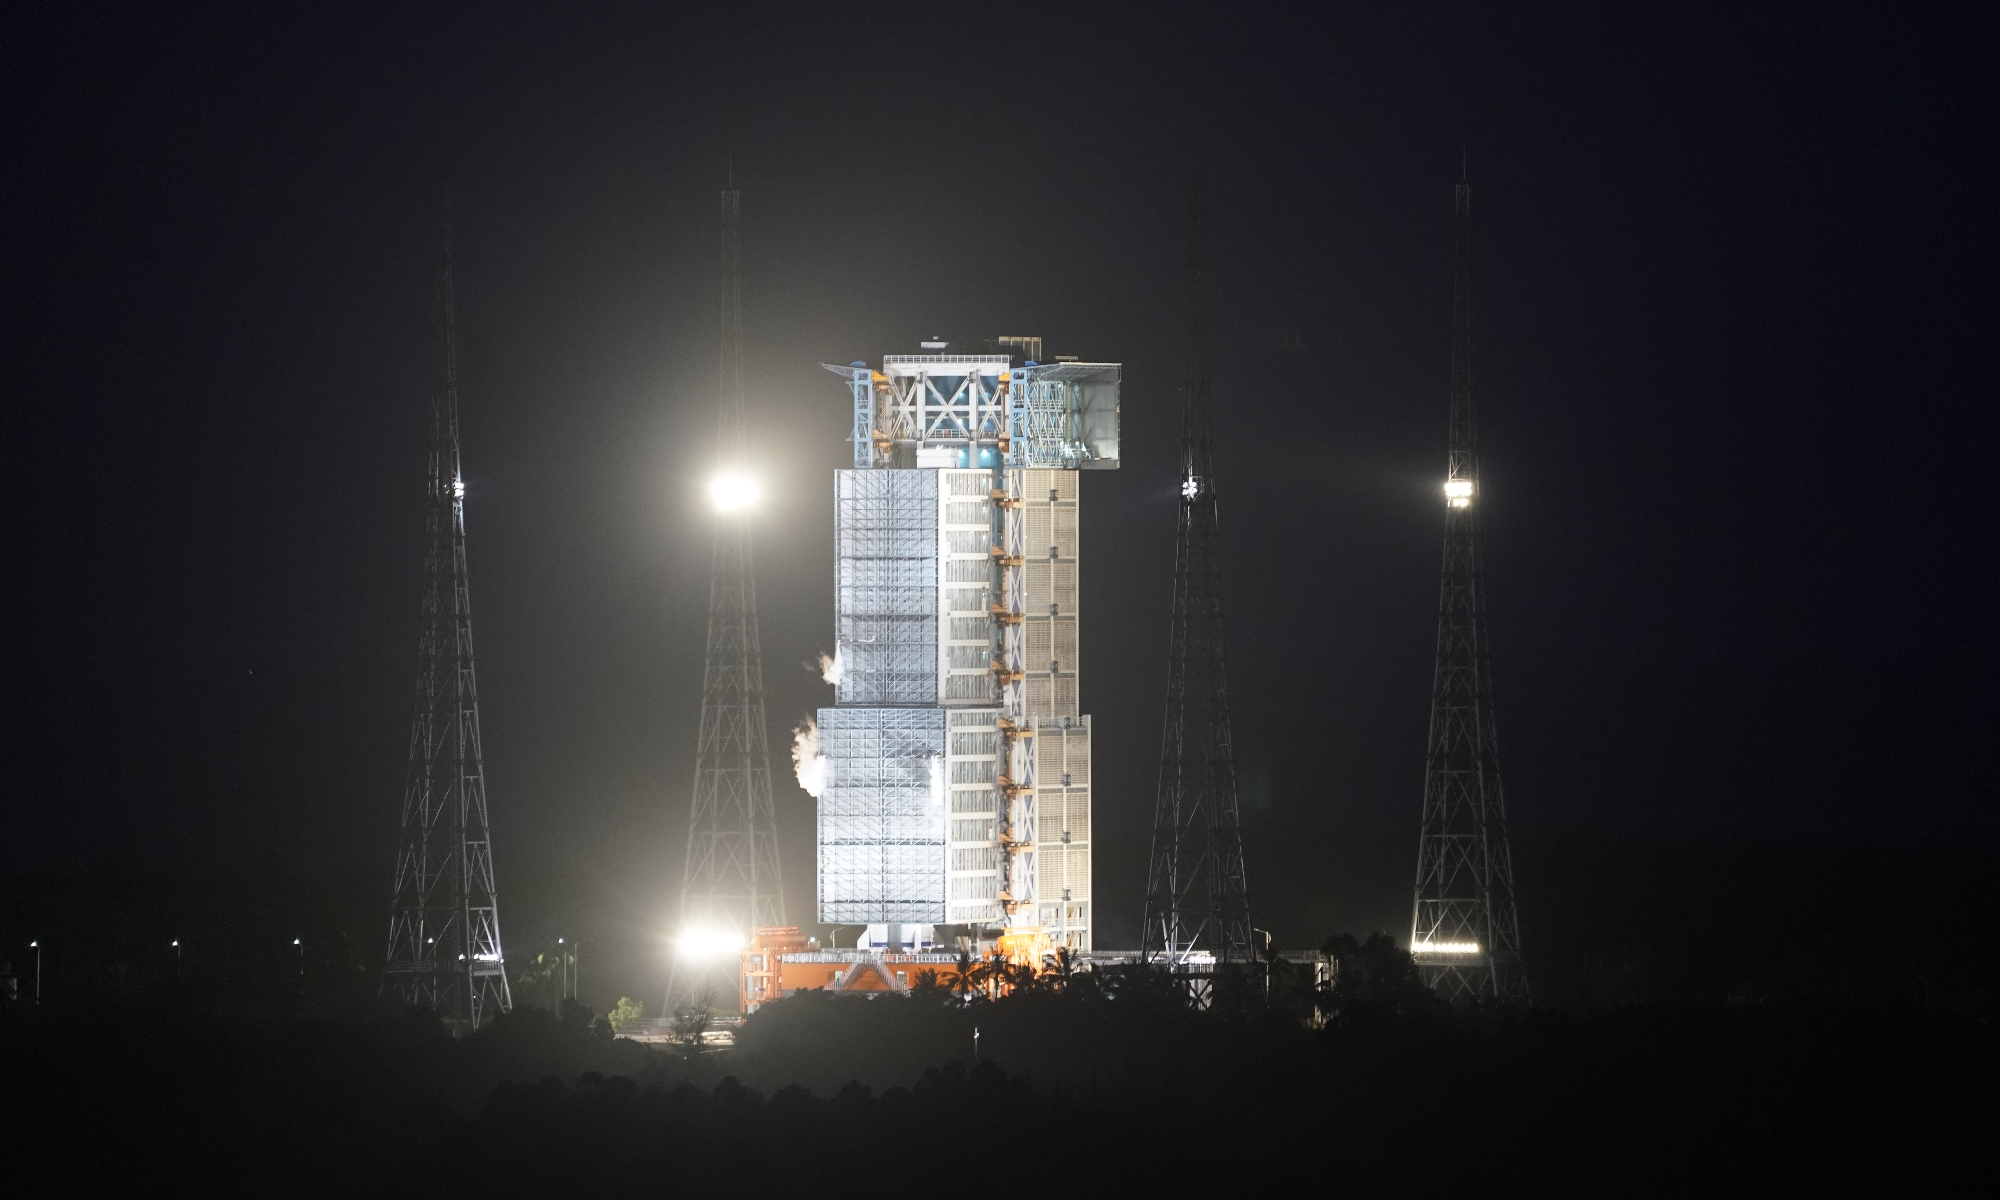 Propellant fueling of the Long March-7 Y3 carrier rocket that is commissioned for the launch of Tianzhou-2 cargo spacecraft to China's space station at around 8:55 pm Saturday has completed on the launch pad at Wenchang spaceport in South China's Hainan Province. Photo: Fan Wei/GT